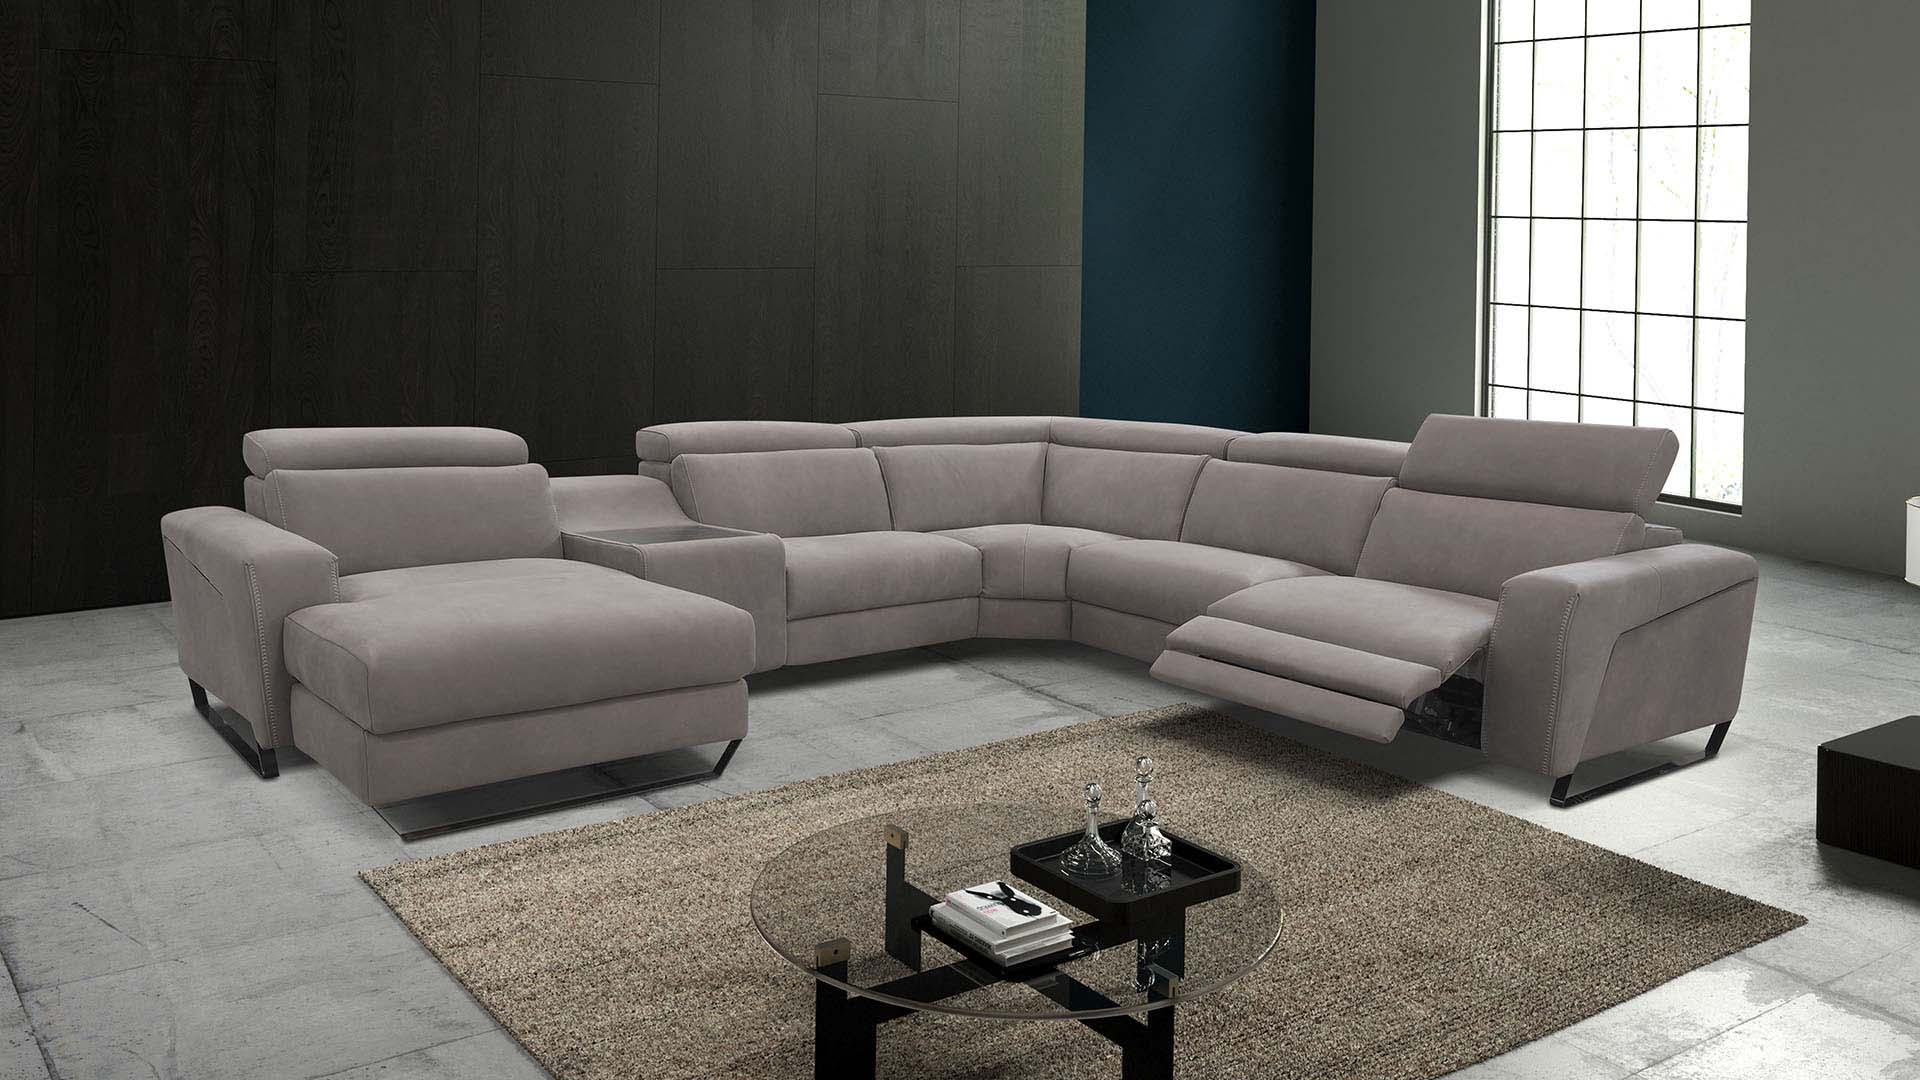 Rossinisofas It Sofas